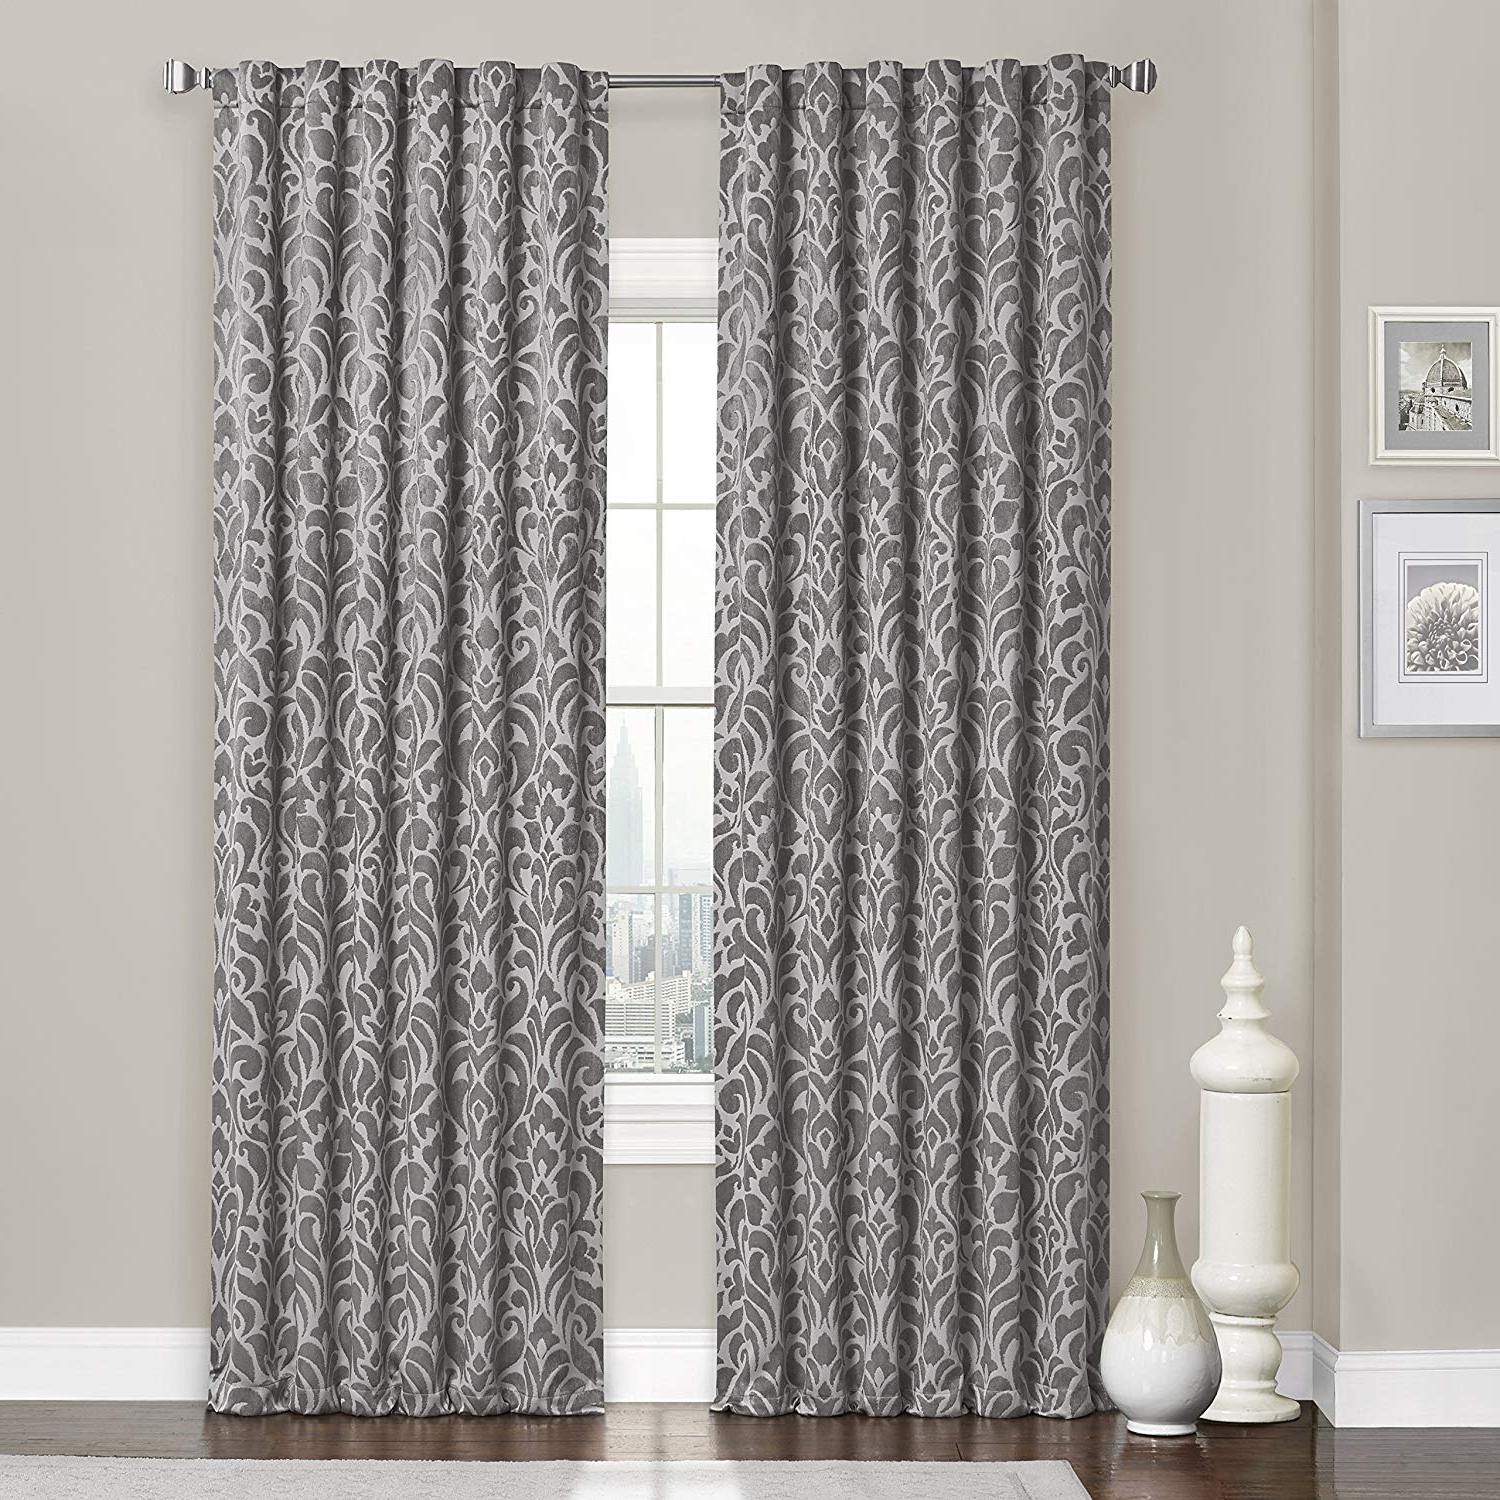 Well Known Eclipse Thermaweave Carven Blackout Window Curtain Panel, 52 X 63, Grey Pertaining To Thermaweave Blackout Curtains (View 19 of 20)